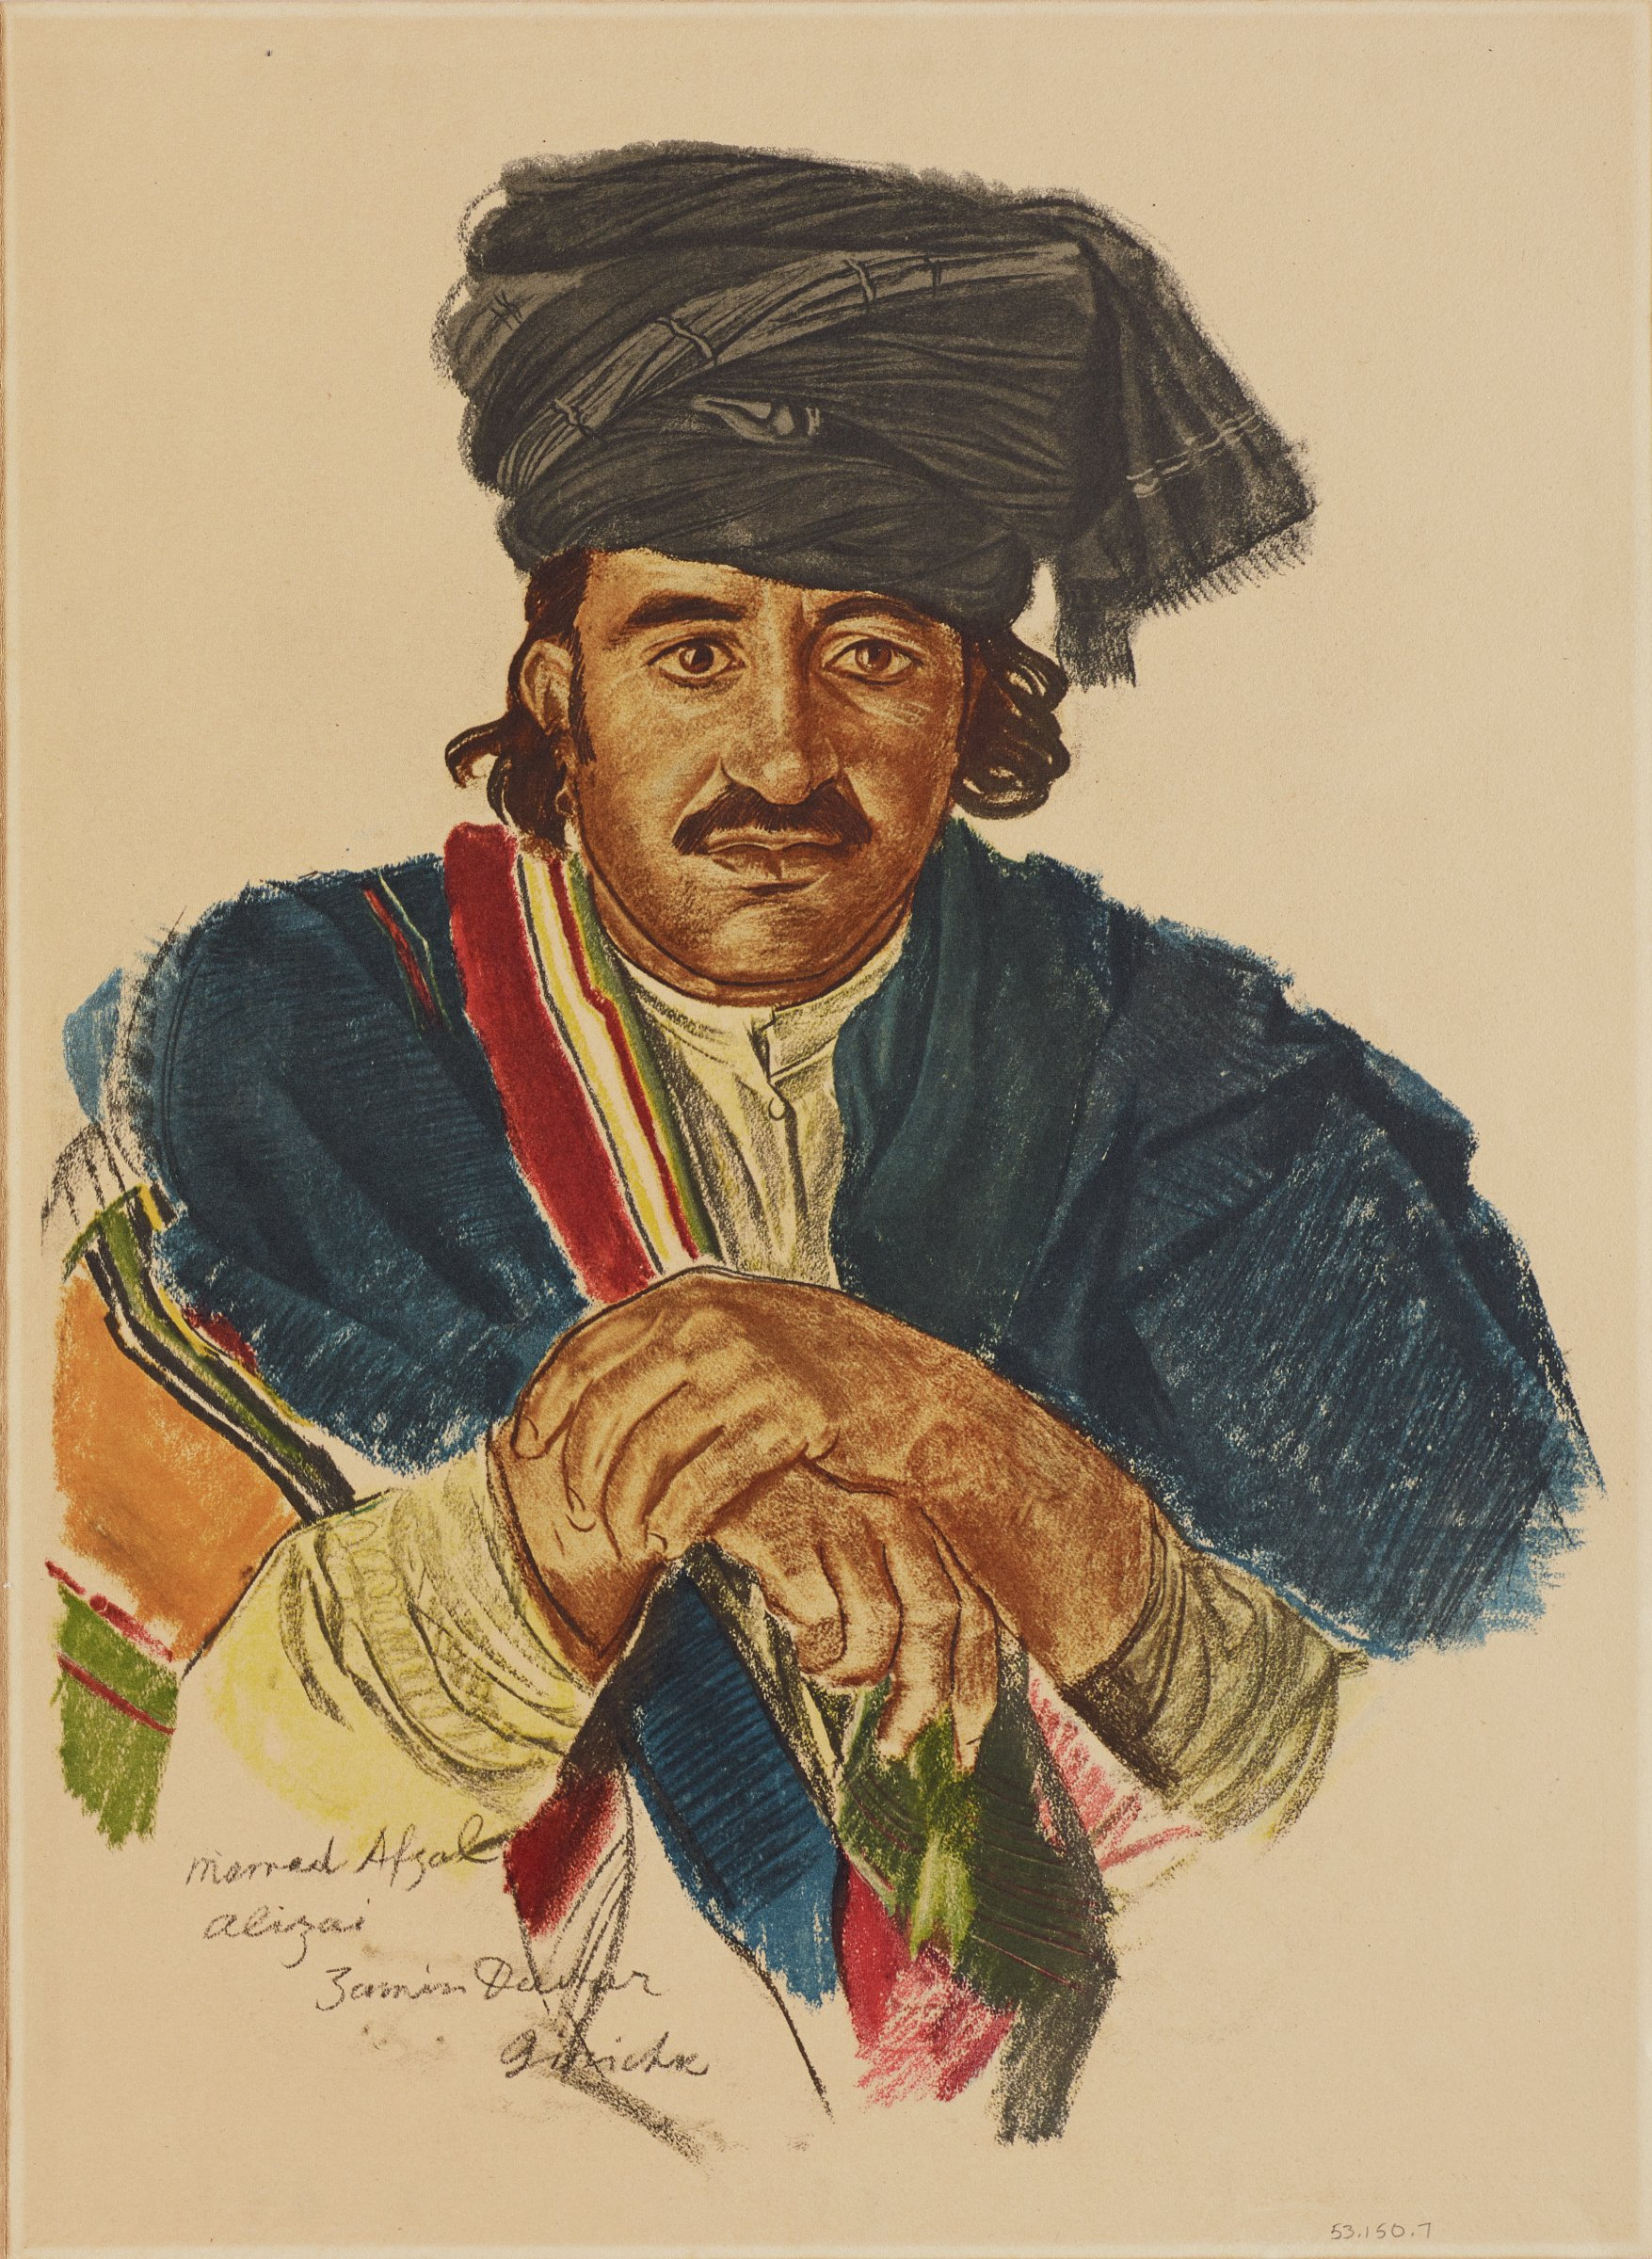 Portrait of male figure with a multi-colored robe over a shirt with a button at the collar. His dark curly hair hands from beneath his turban. His hands cross at his chest. This series is a product of Jacovleff's involvement in the Expédition Citroën Centre-Asie.